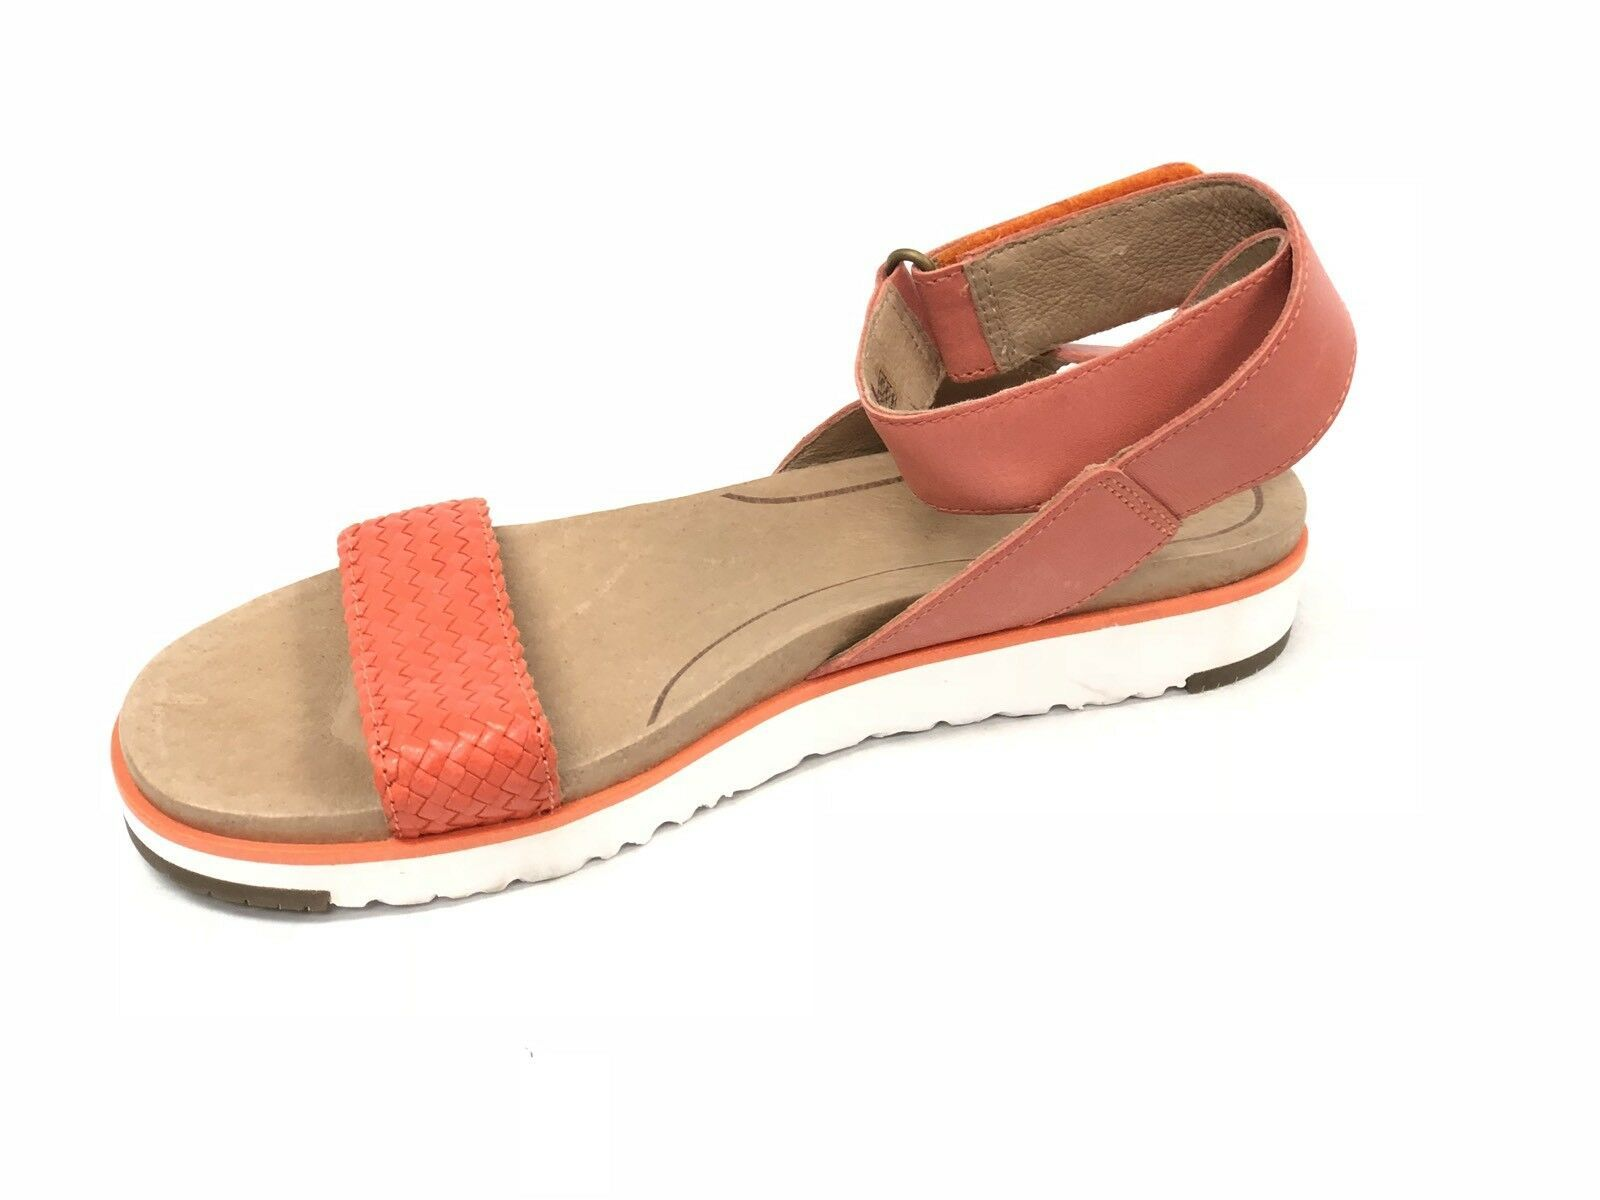 Ugg Australia Laddie Women's Ankle Strap Fire Opal Orange Sandal 1015669 Shoes image 7